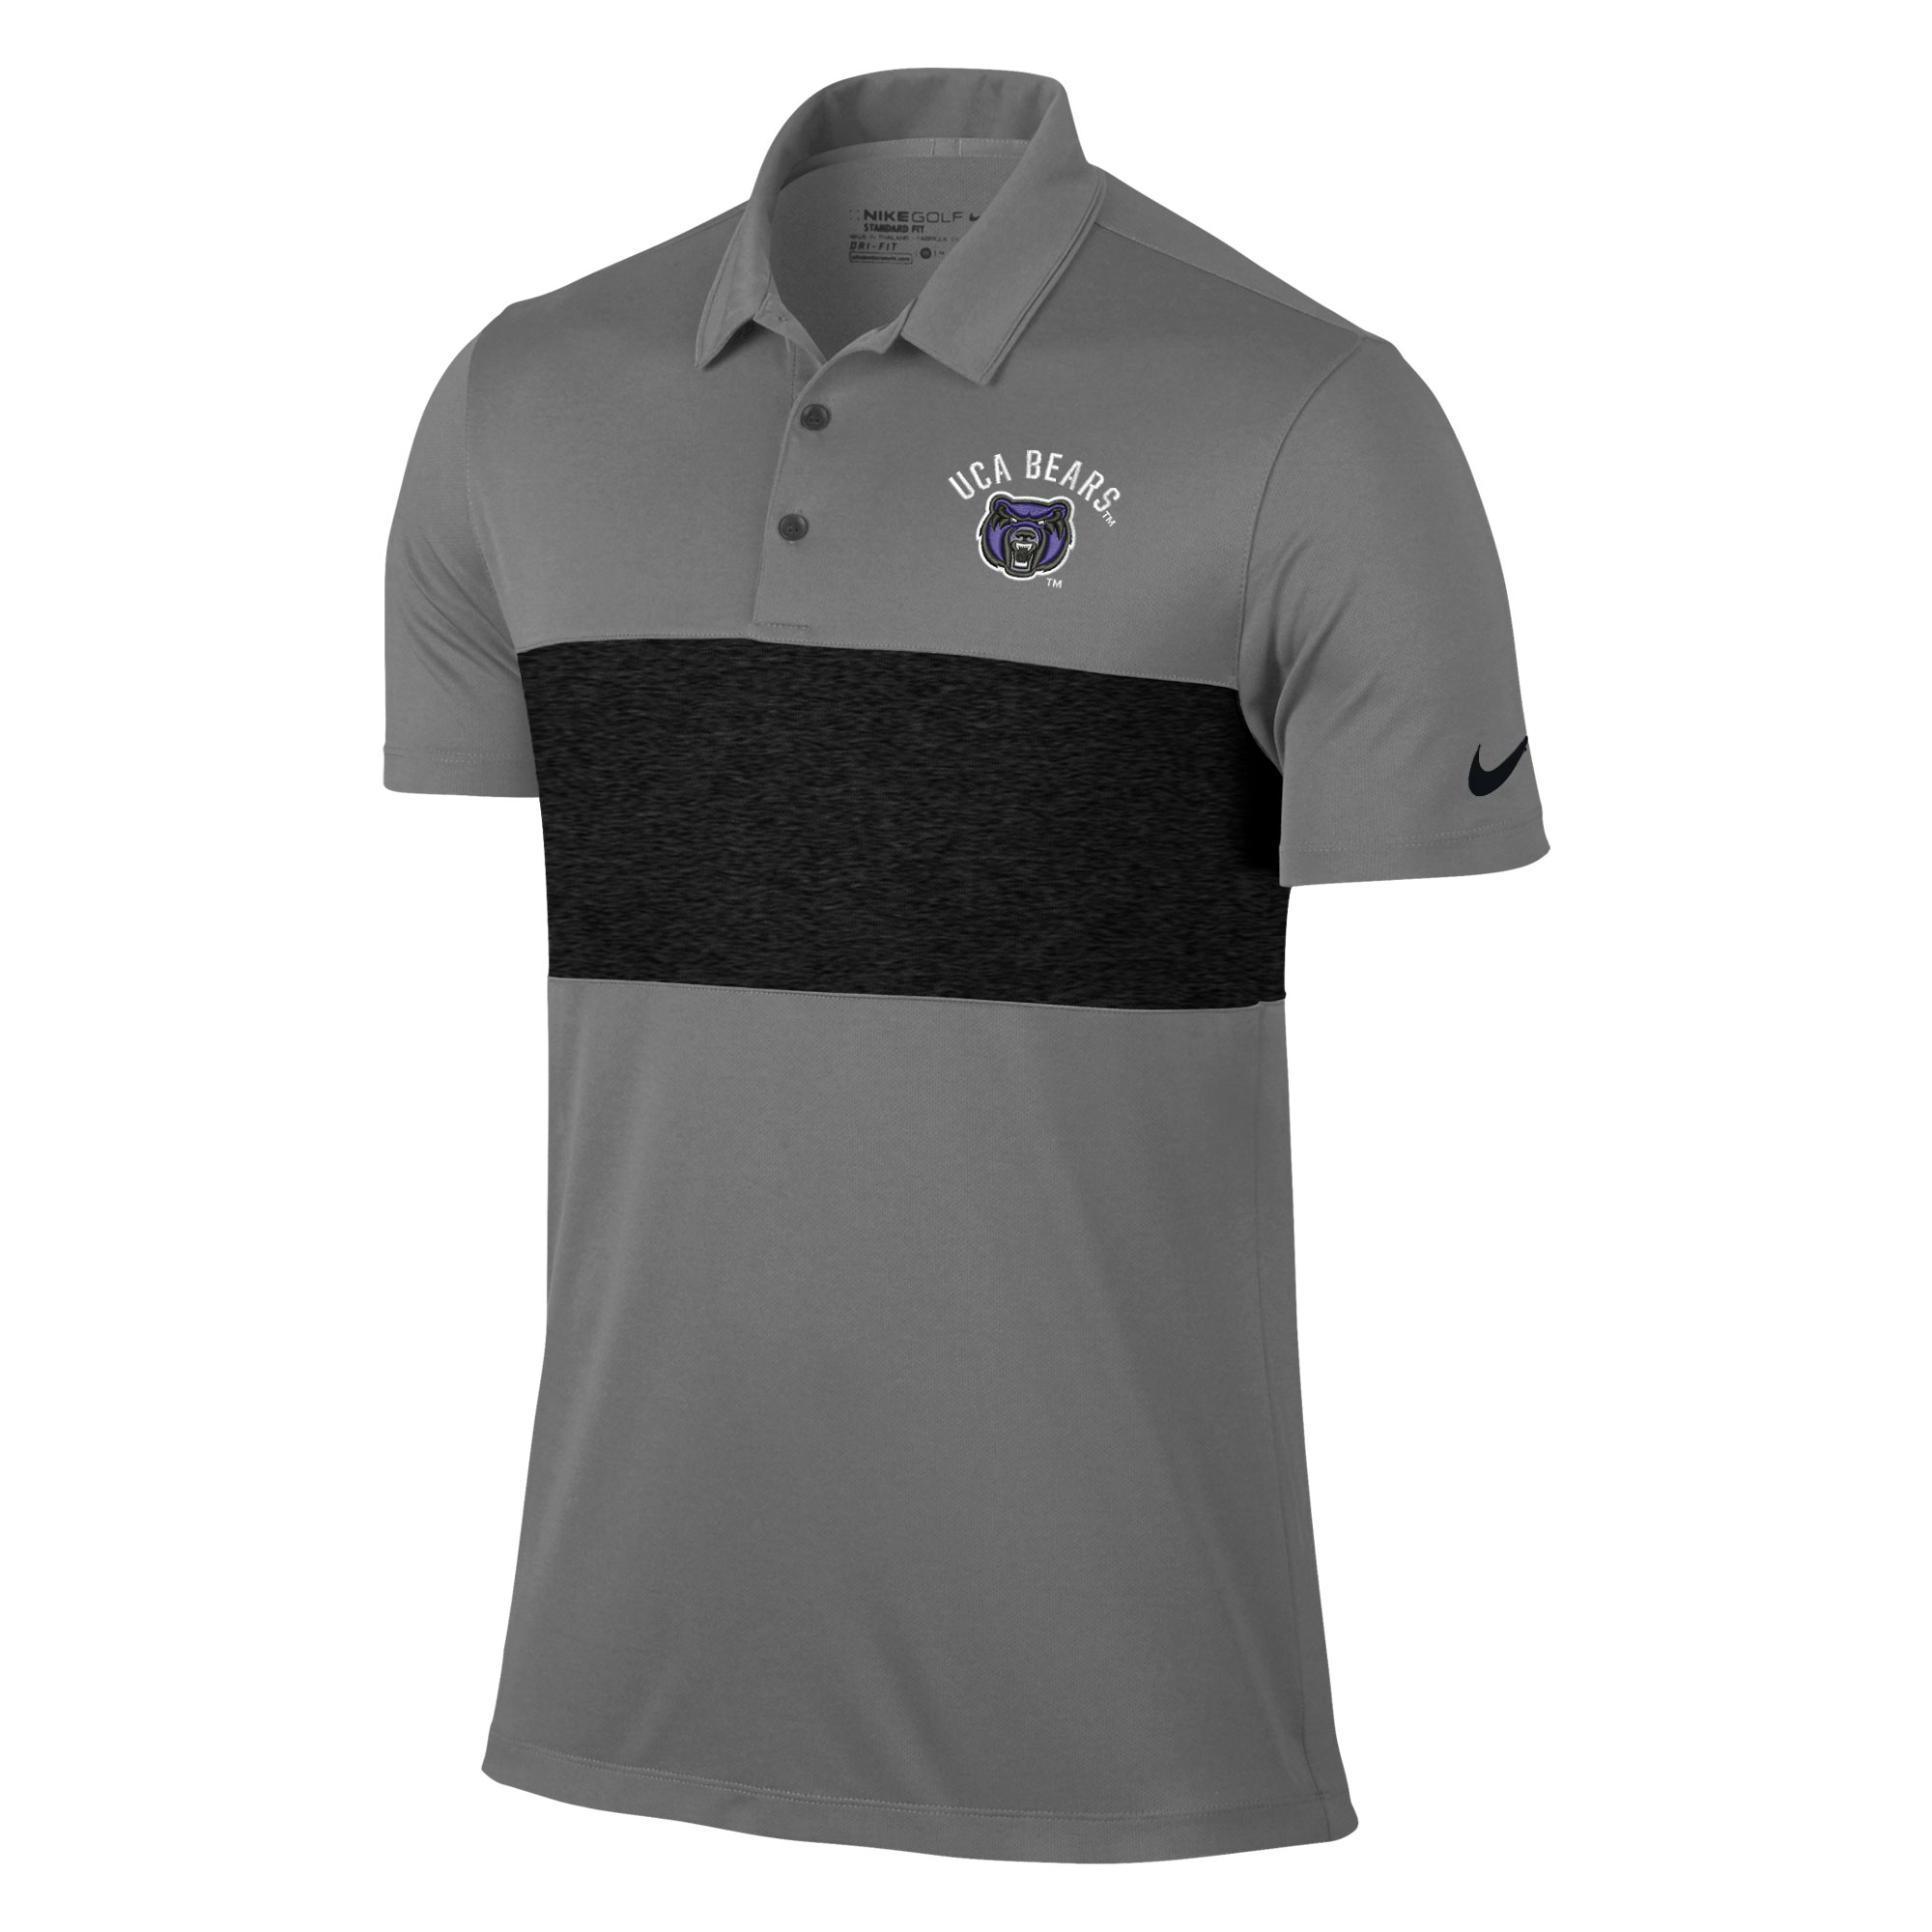 Men's Breathe Colorblock Polo